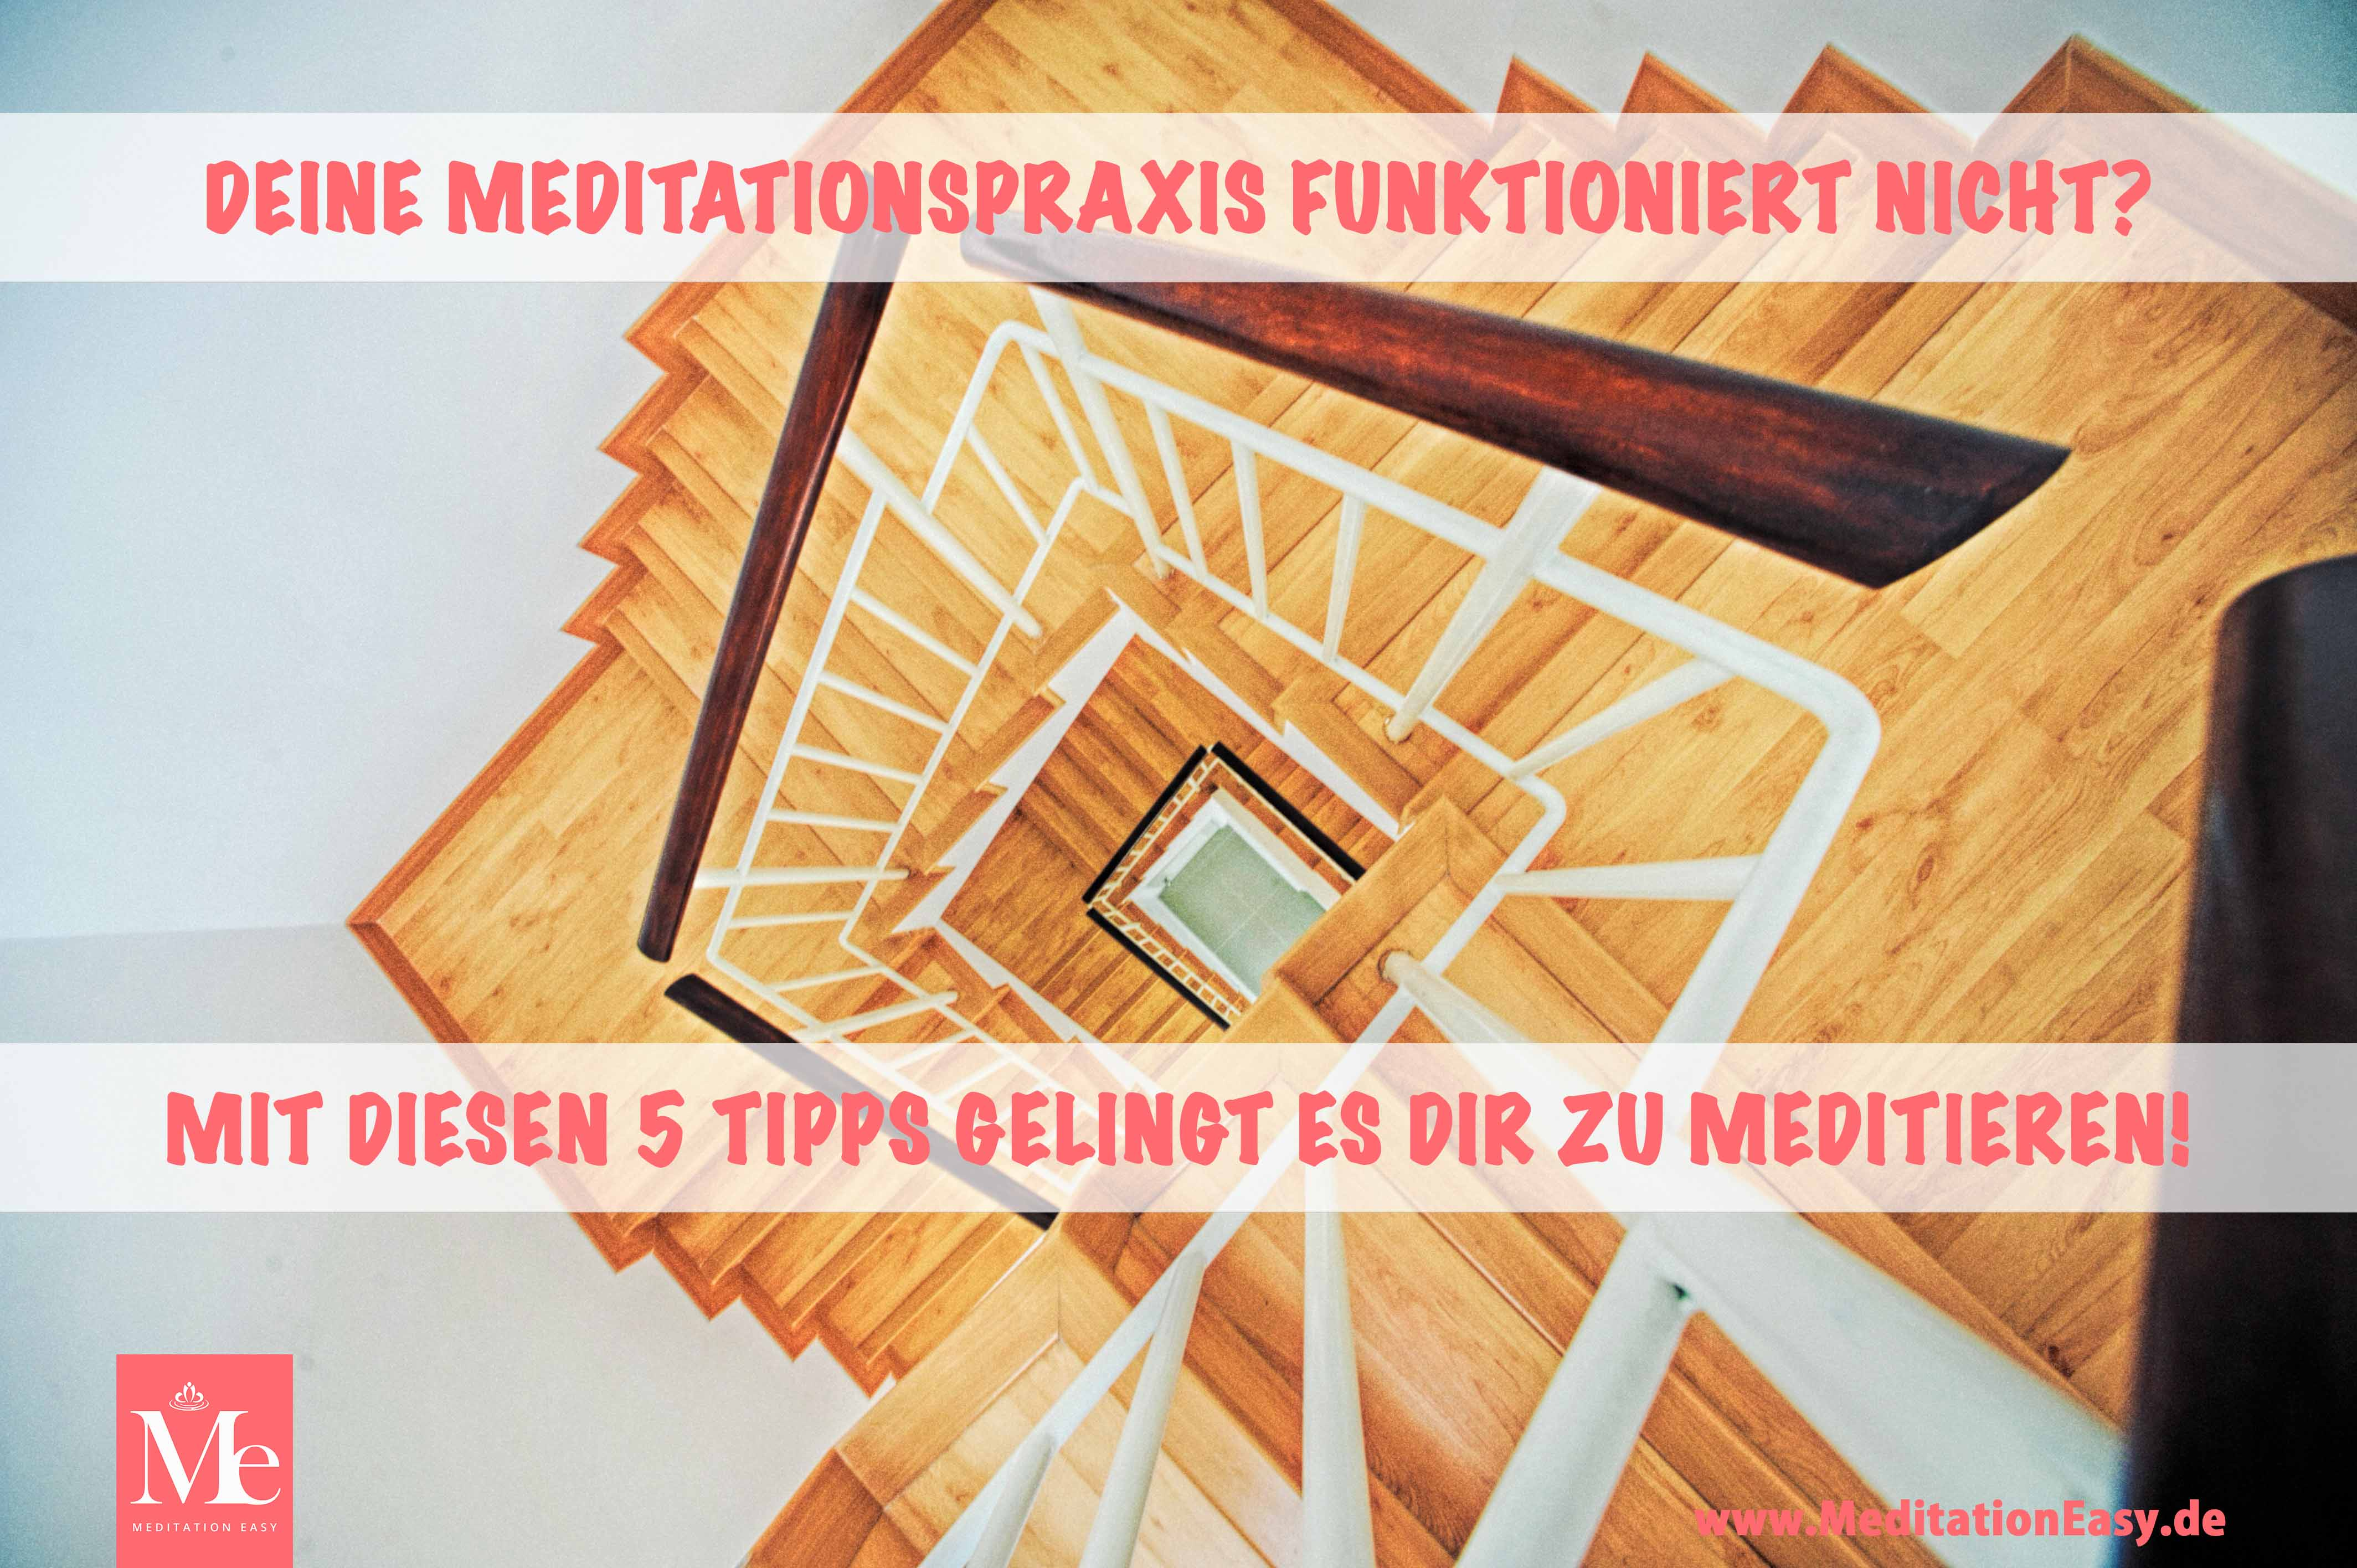 Blog meditation funktioniert nicht